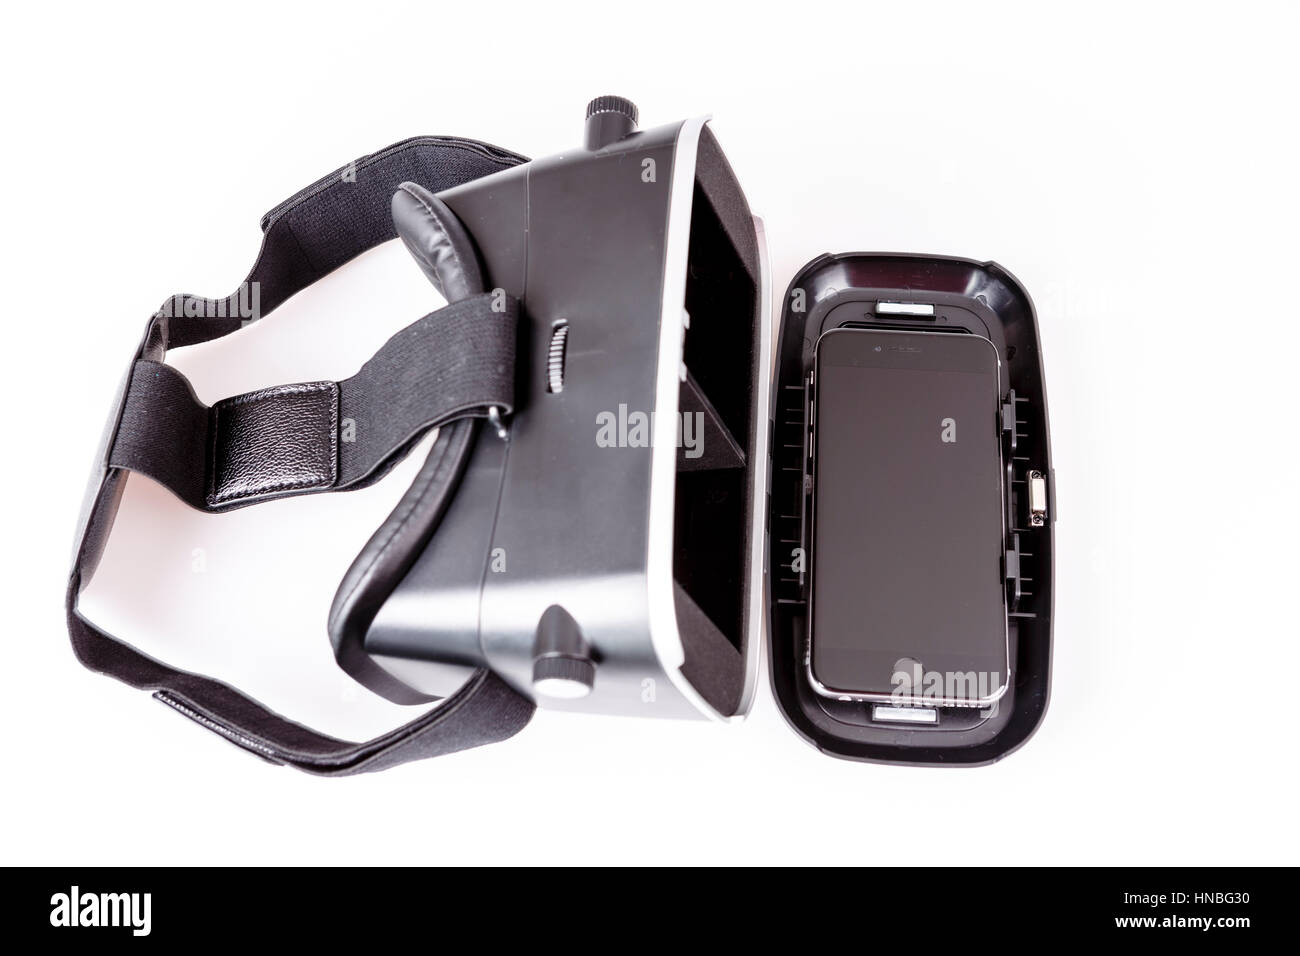 virtual reality simulator glasses for smartphone on white, vr experience - Stock Image